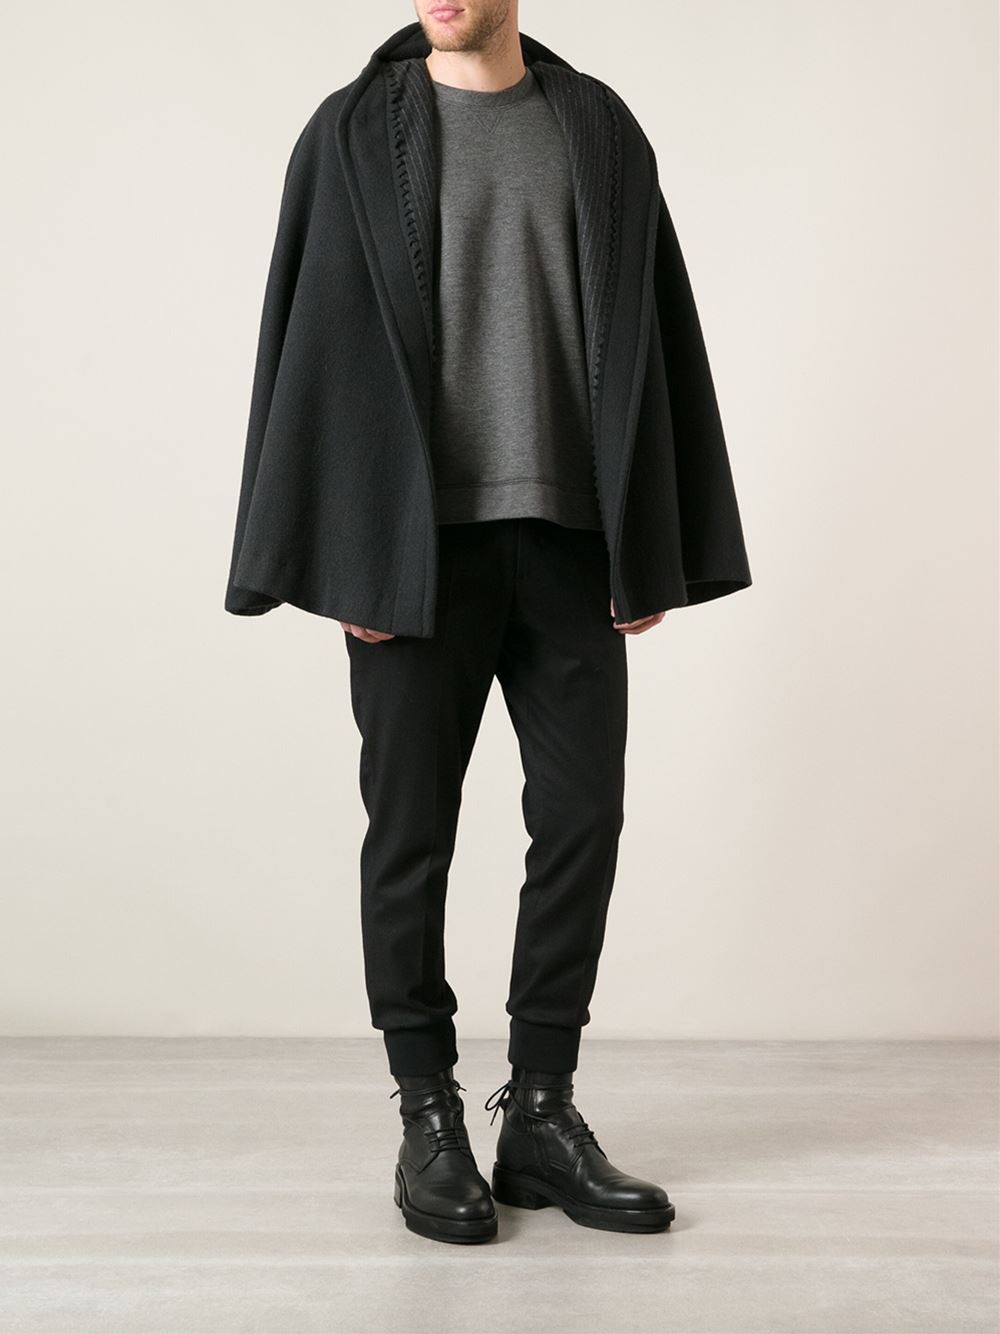 Dolce & Gabbana dark grey wool blend cape coat with a hood